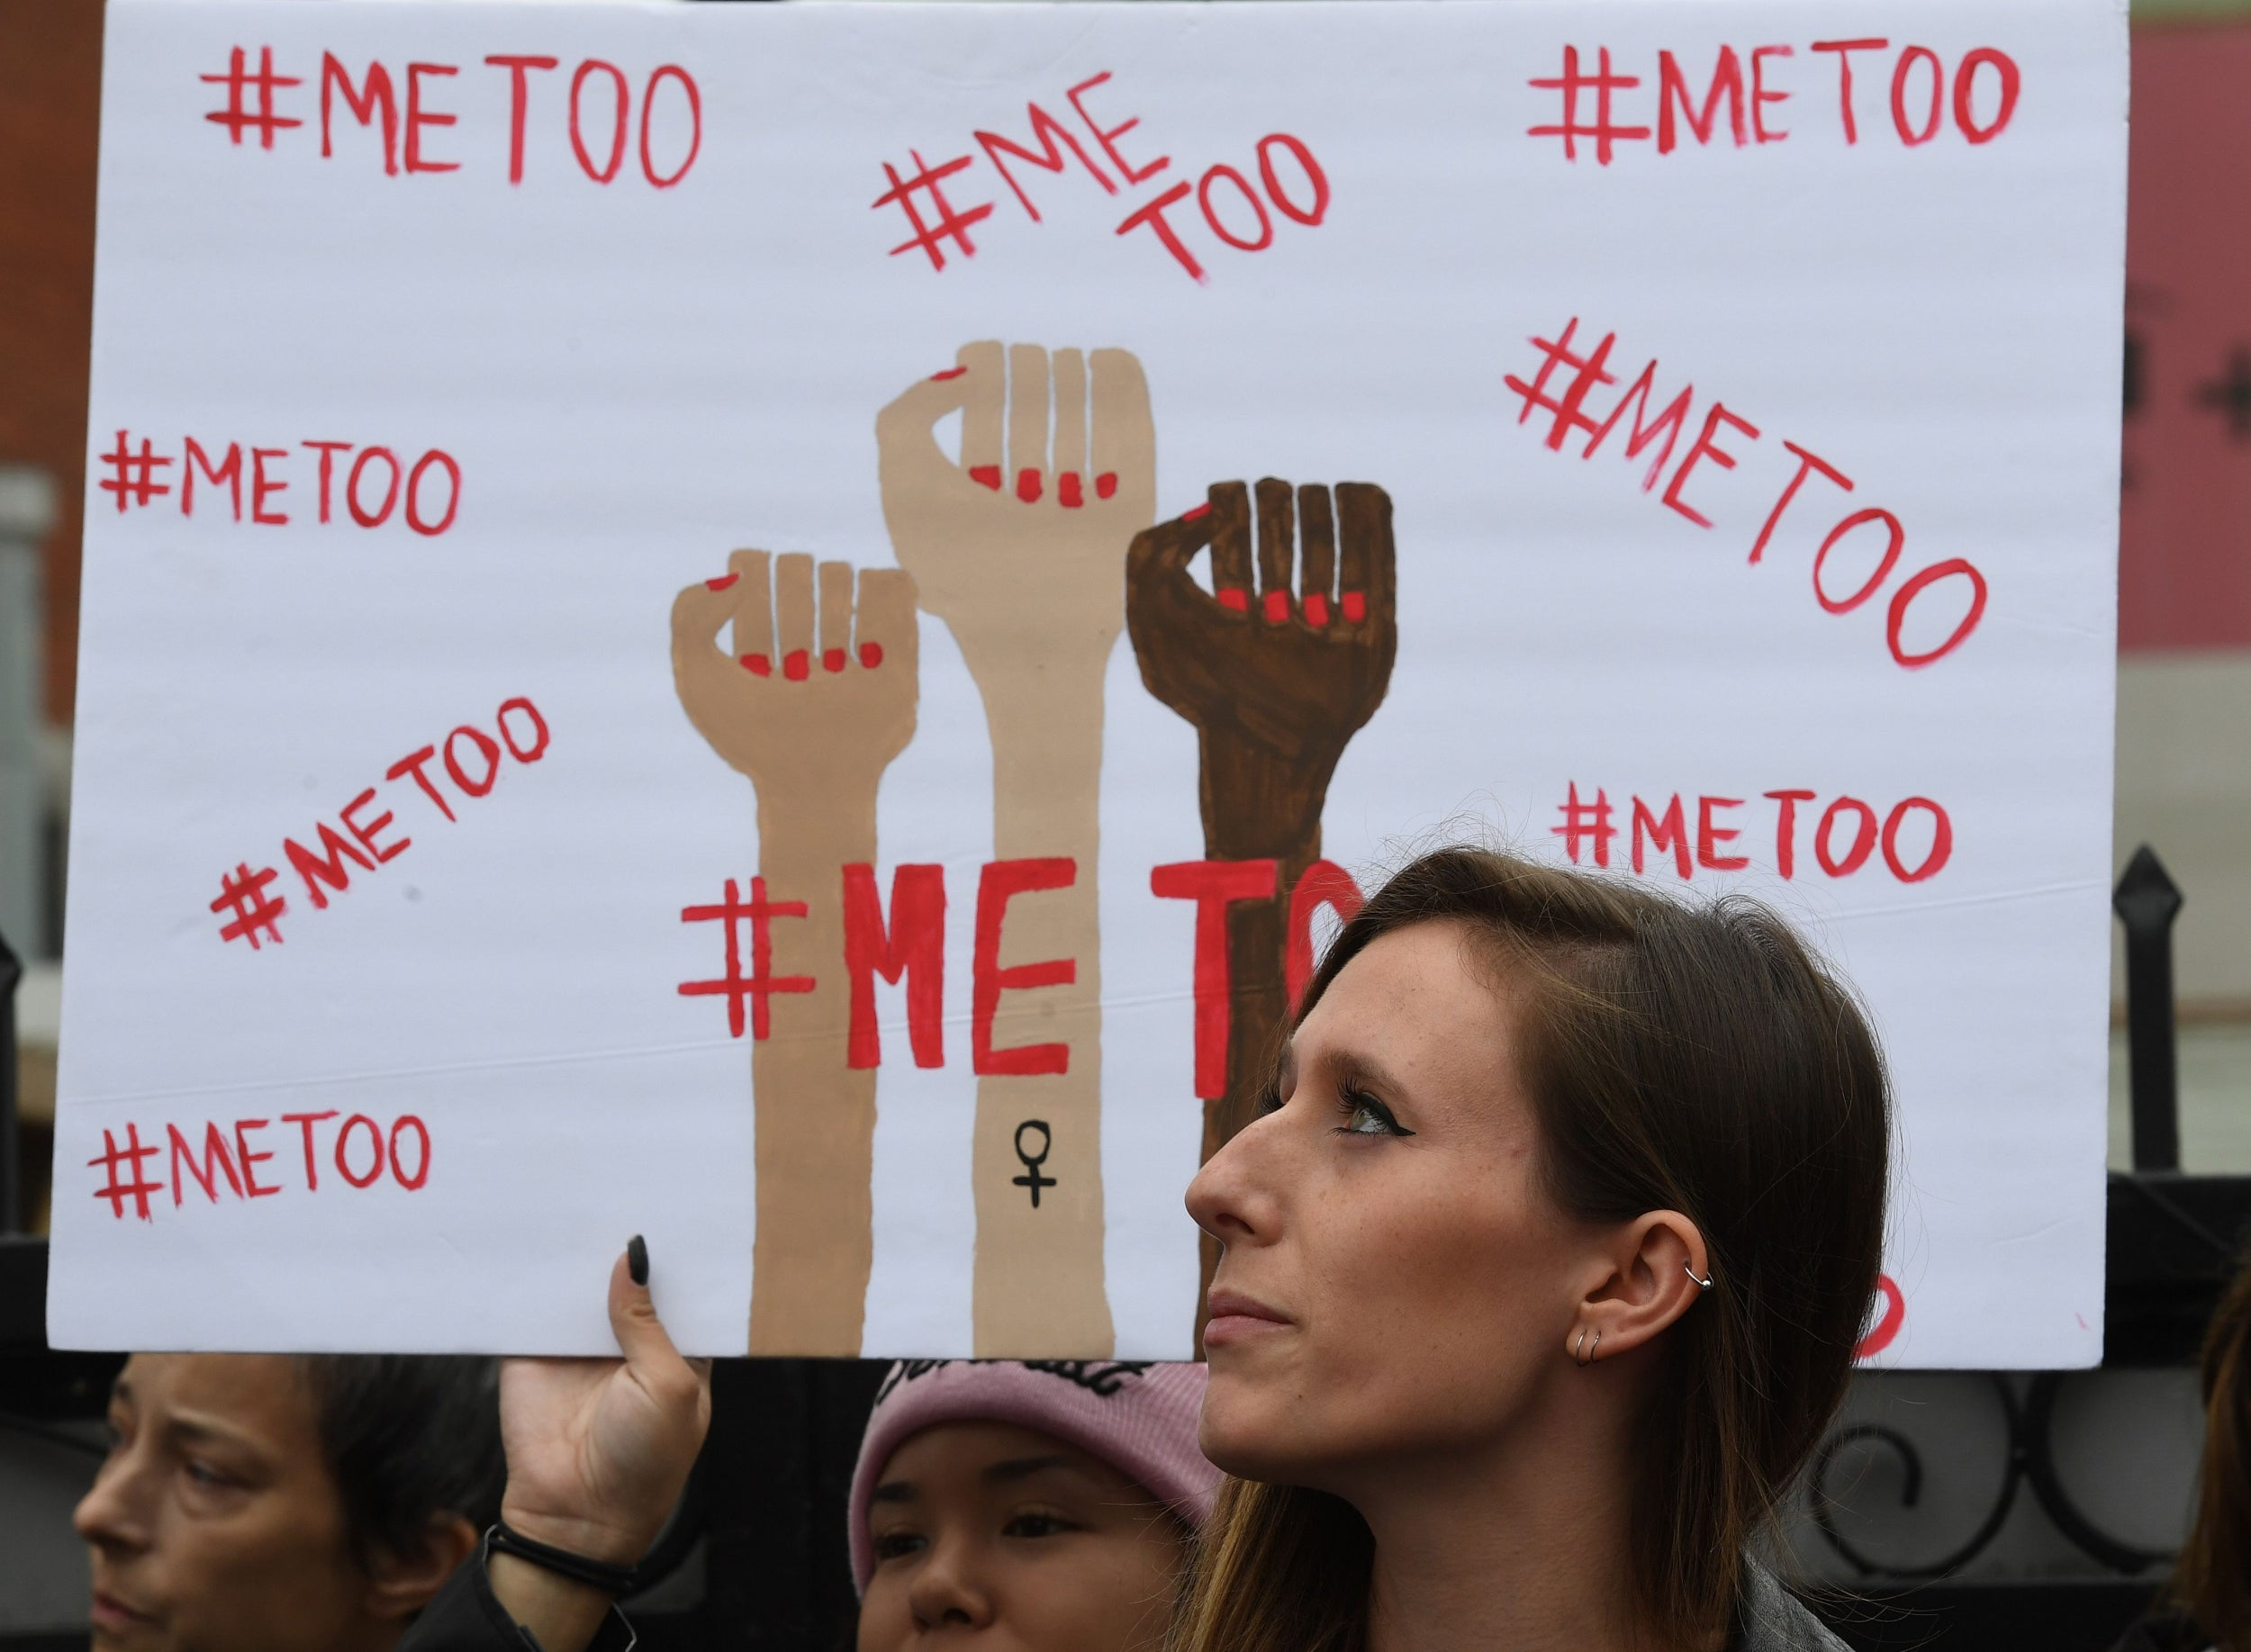 Misogyny is a hate crime, and calling it by its name has immediately helped to make women's lives better